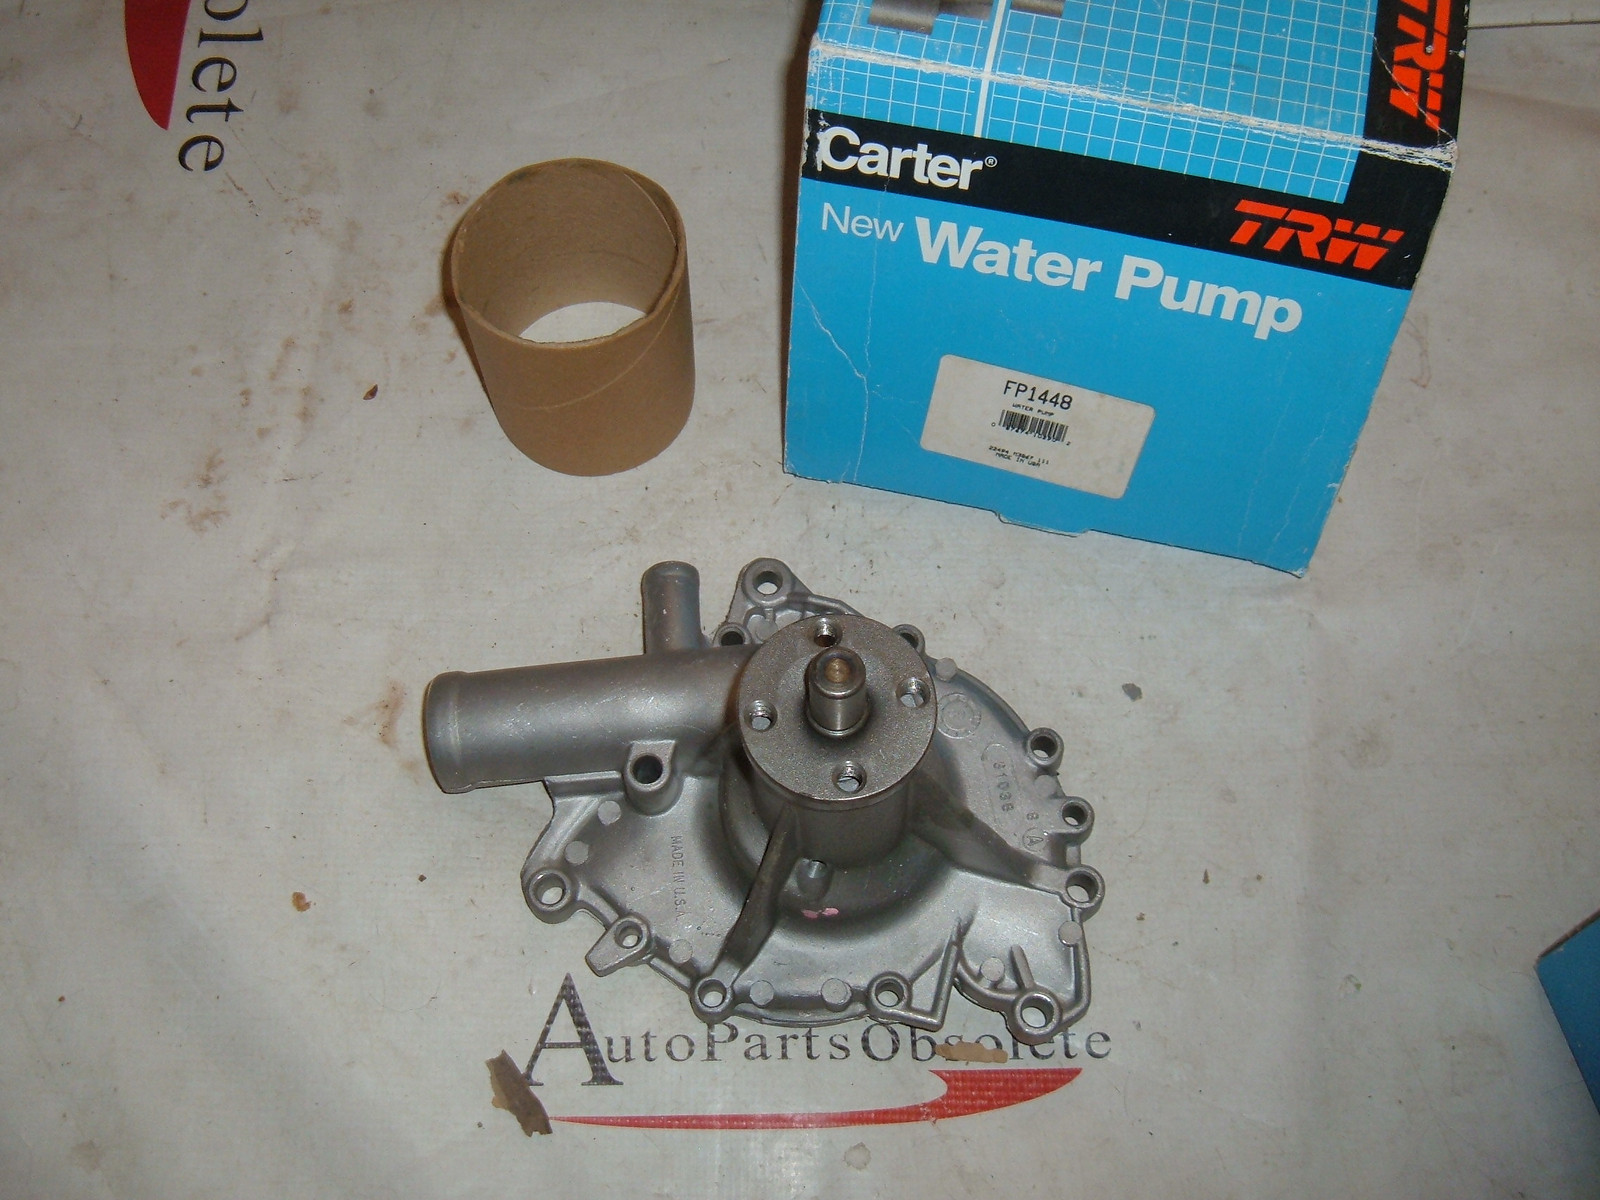 View Product1975 77 79 71 73 85 chevrolet buick pontiac oldsmobile v-6 and 8 cly water pump (zb fp1448)